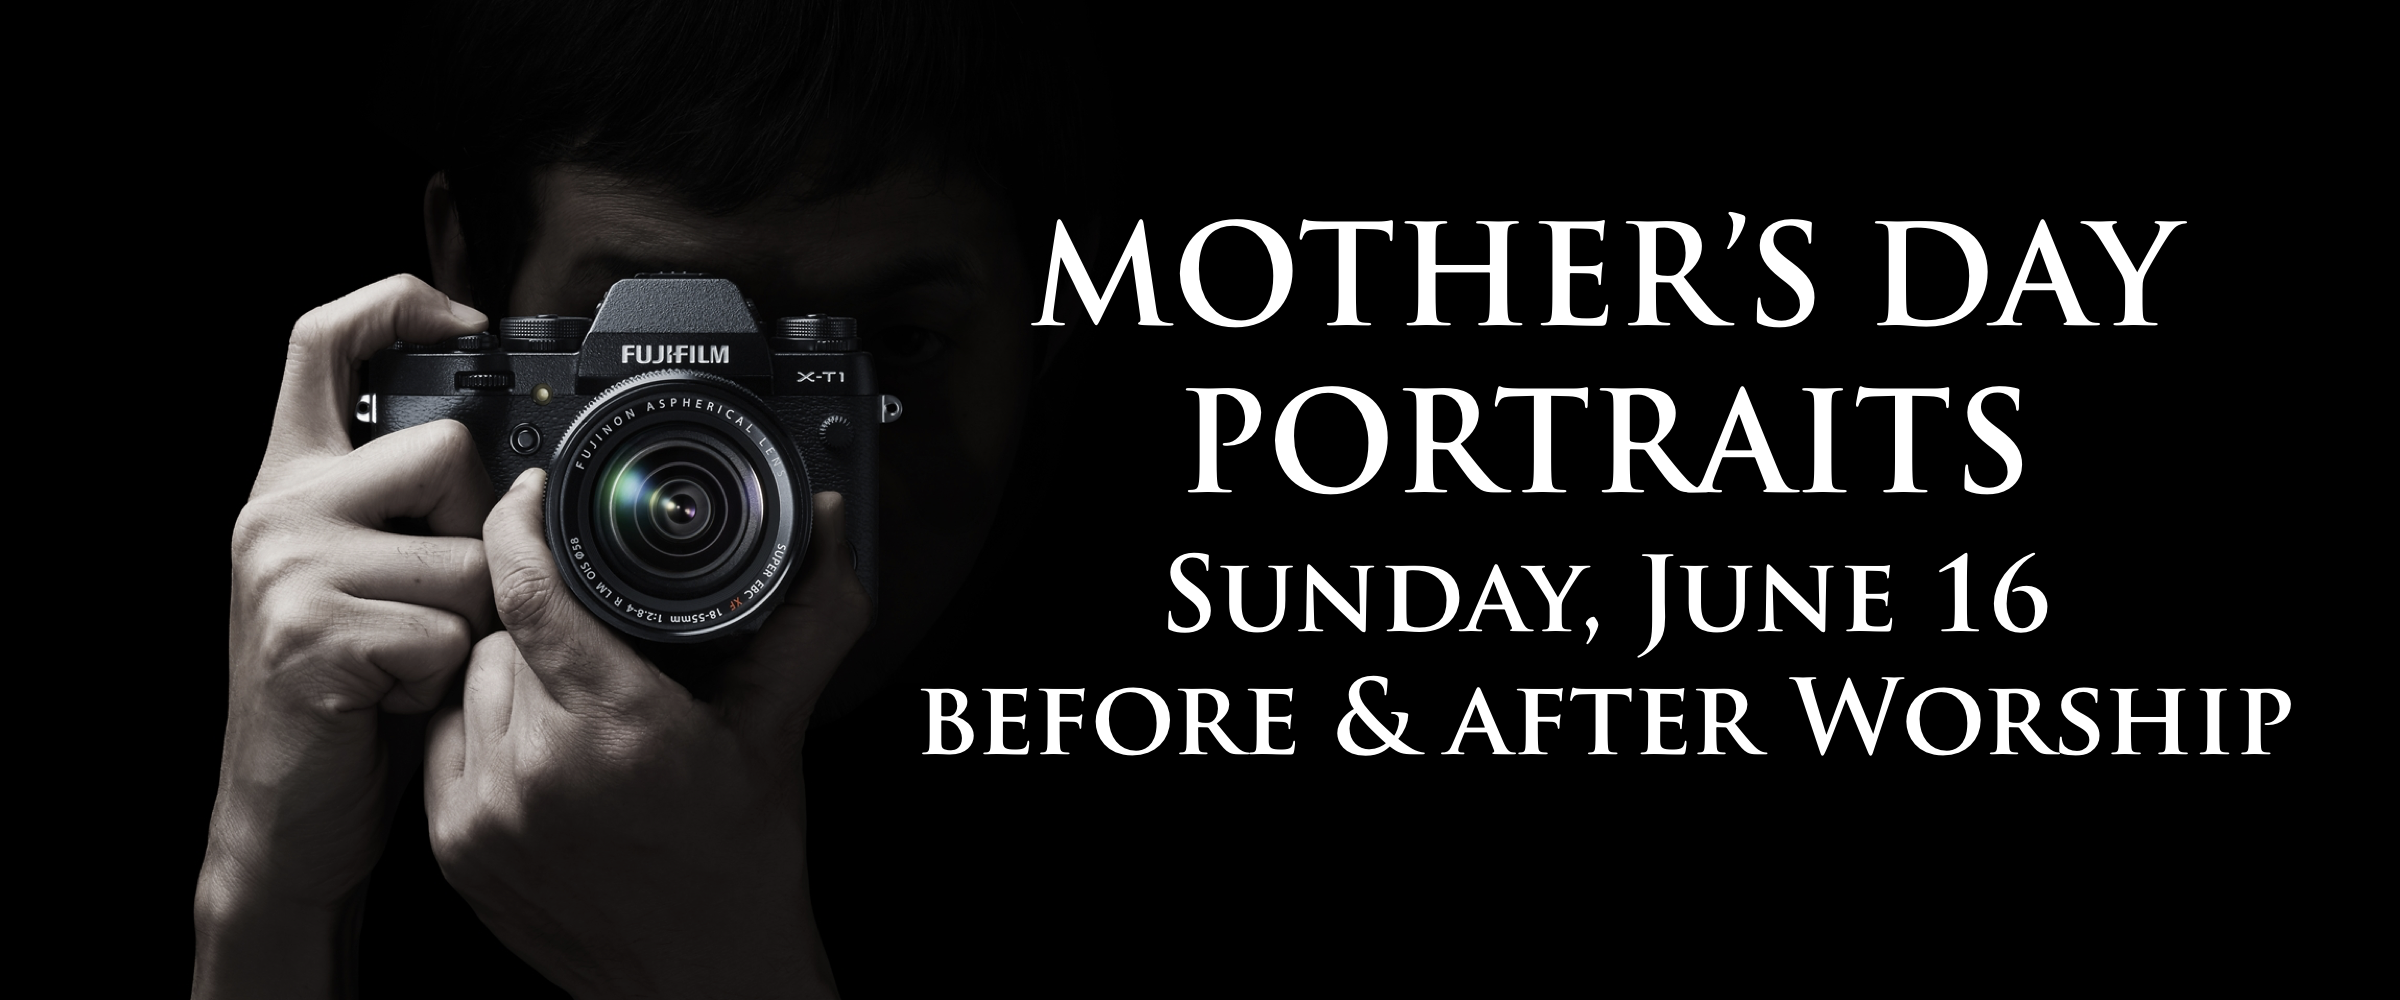 MOTHER'S DAY PORTRAITS (Event Thumbnail).001.png